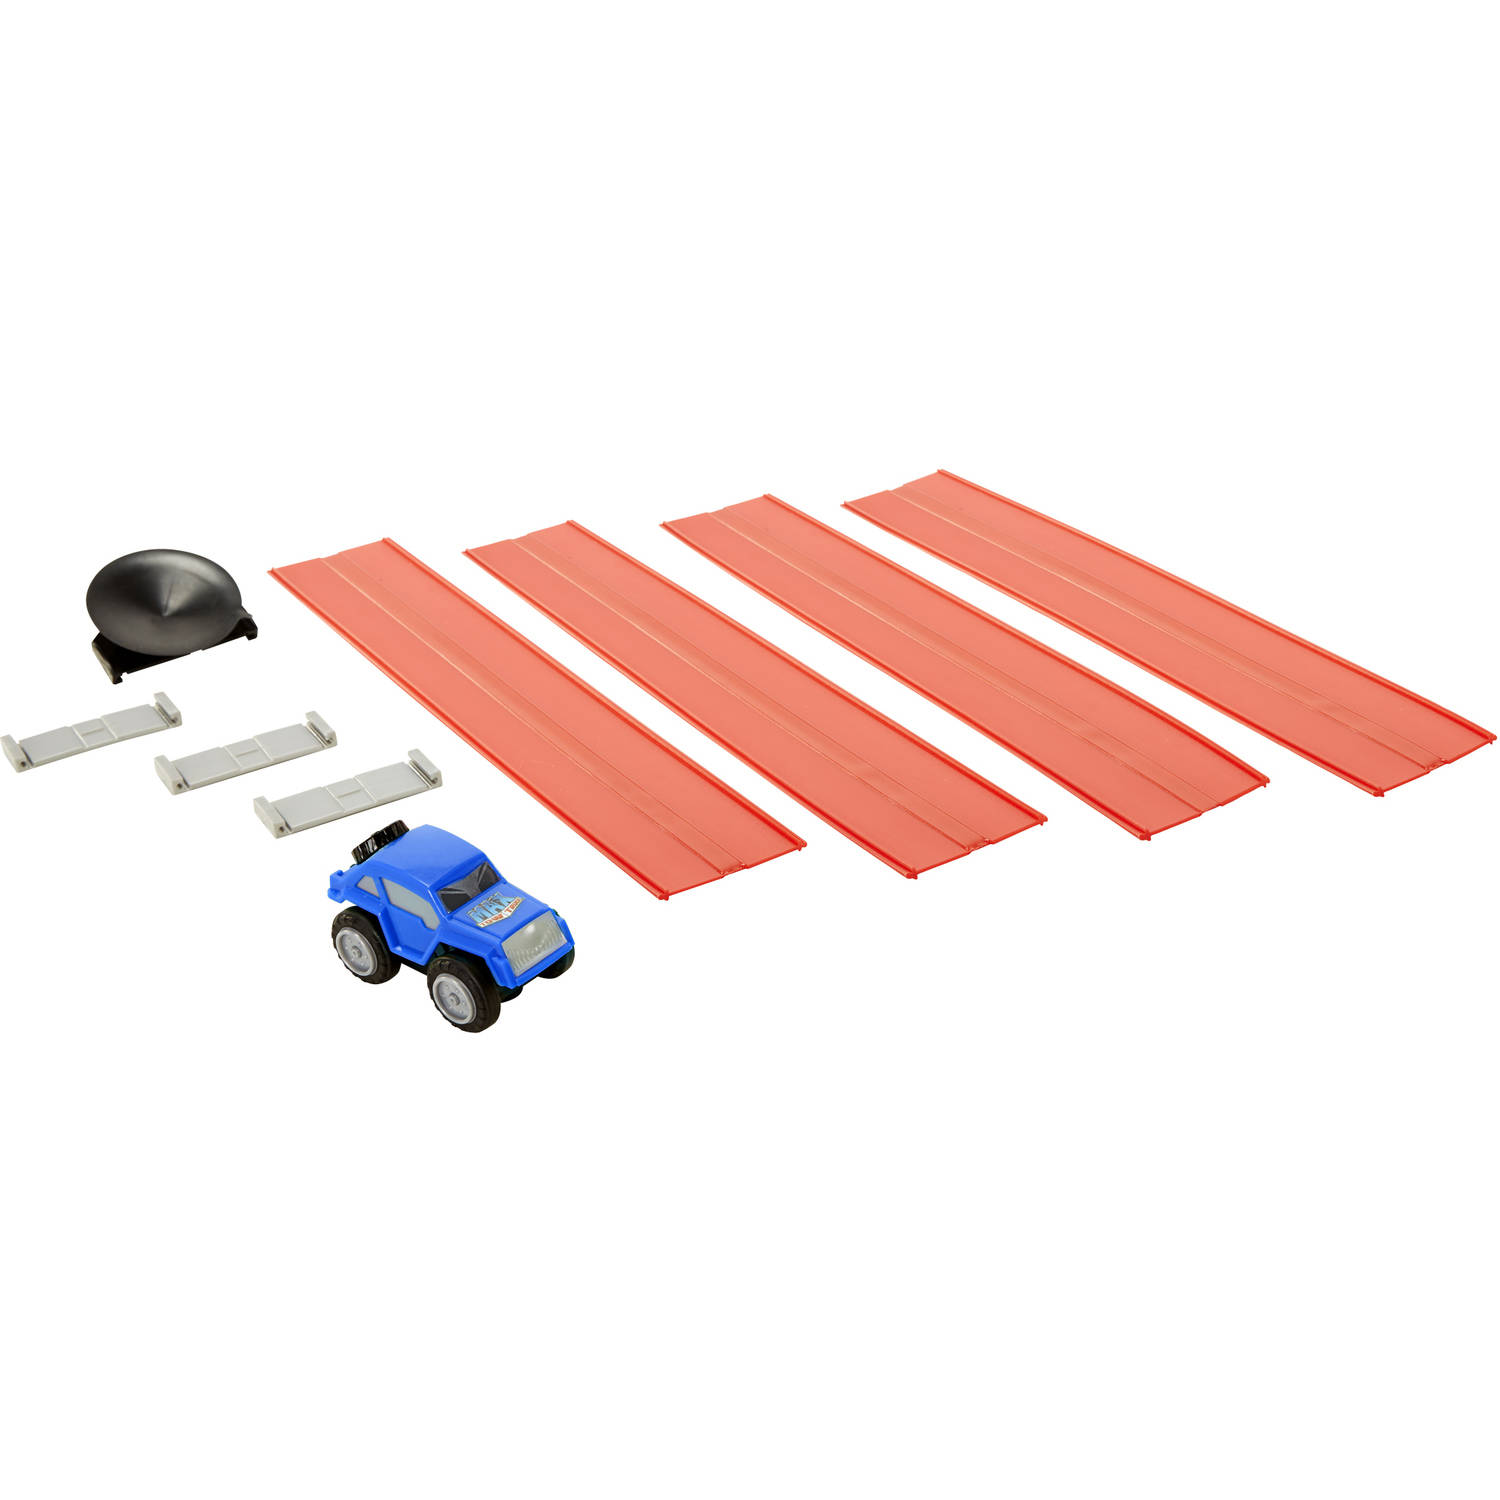 Max Tow Mini Haulers Tow and Track Packs, Blue Crawler Truck with Track Pieces